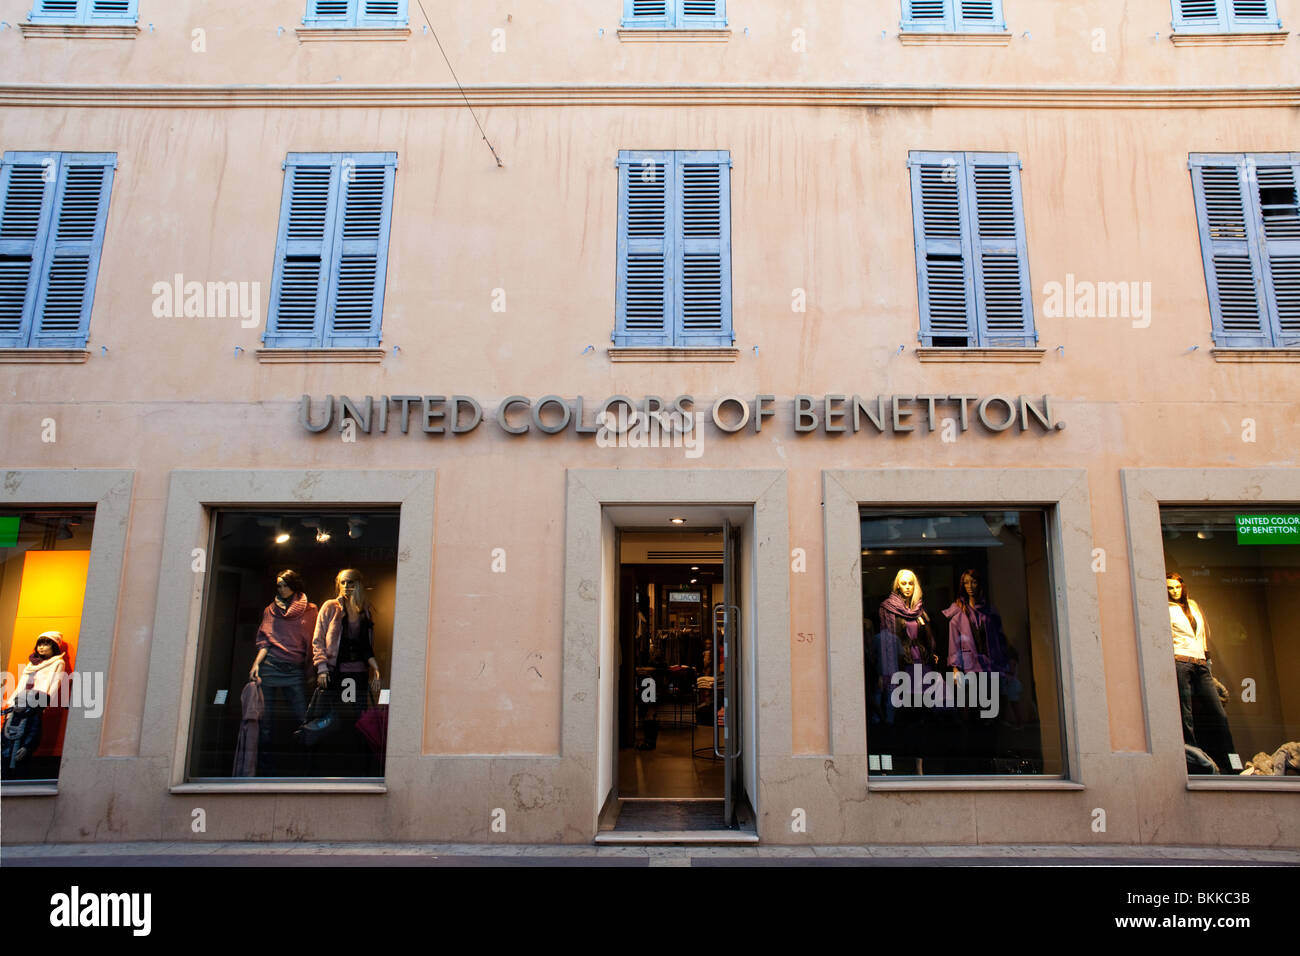 BENETTON FASHION STORE IN ST TROPEZ, FRANCE - Stock Image